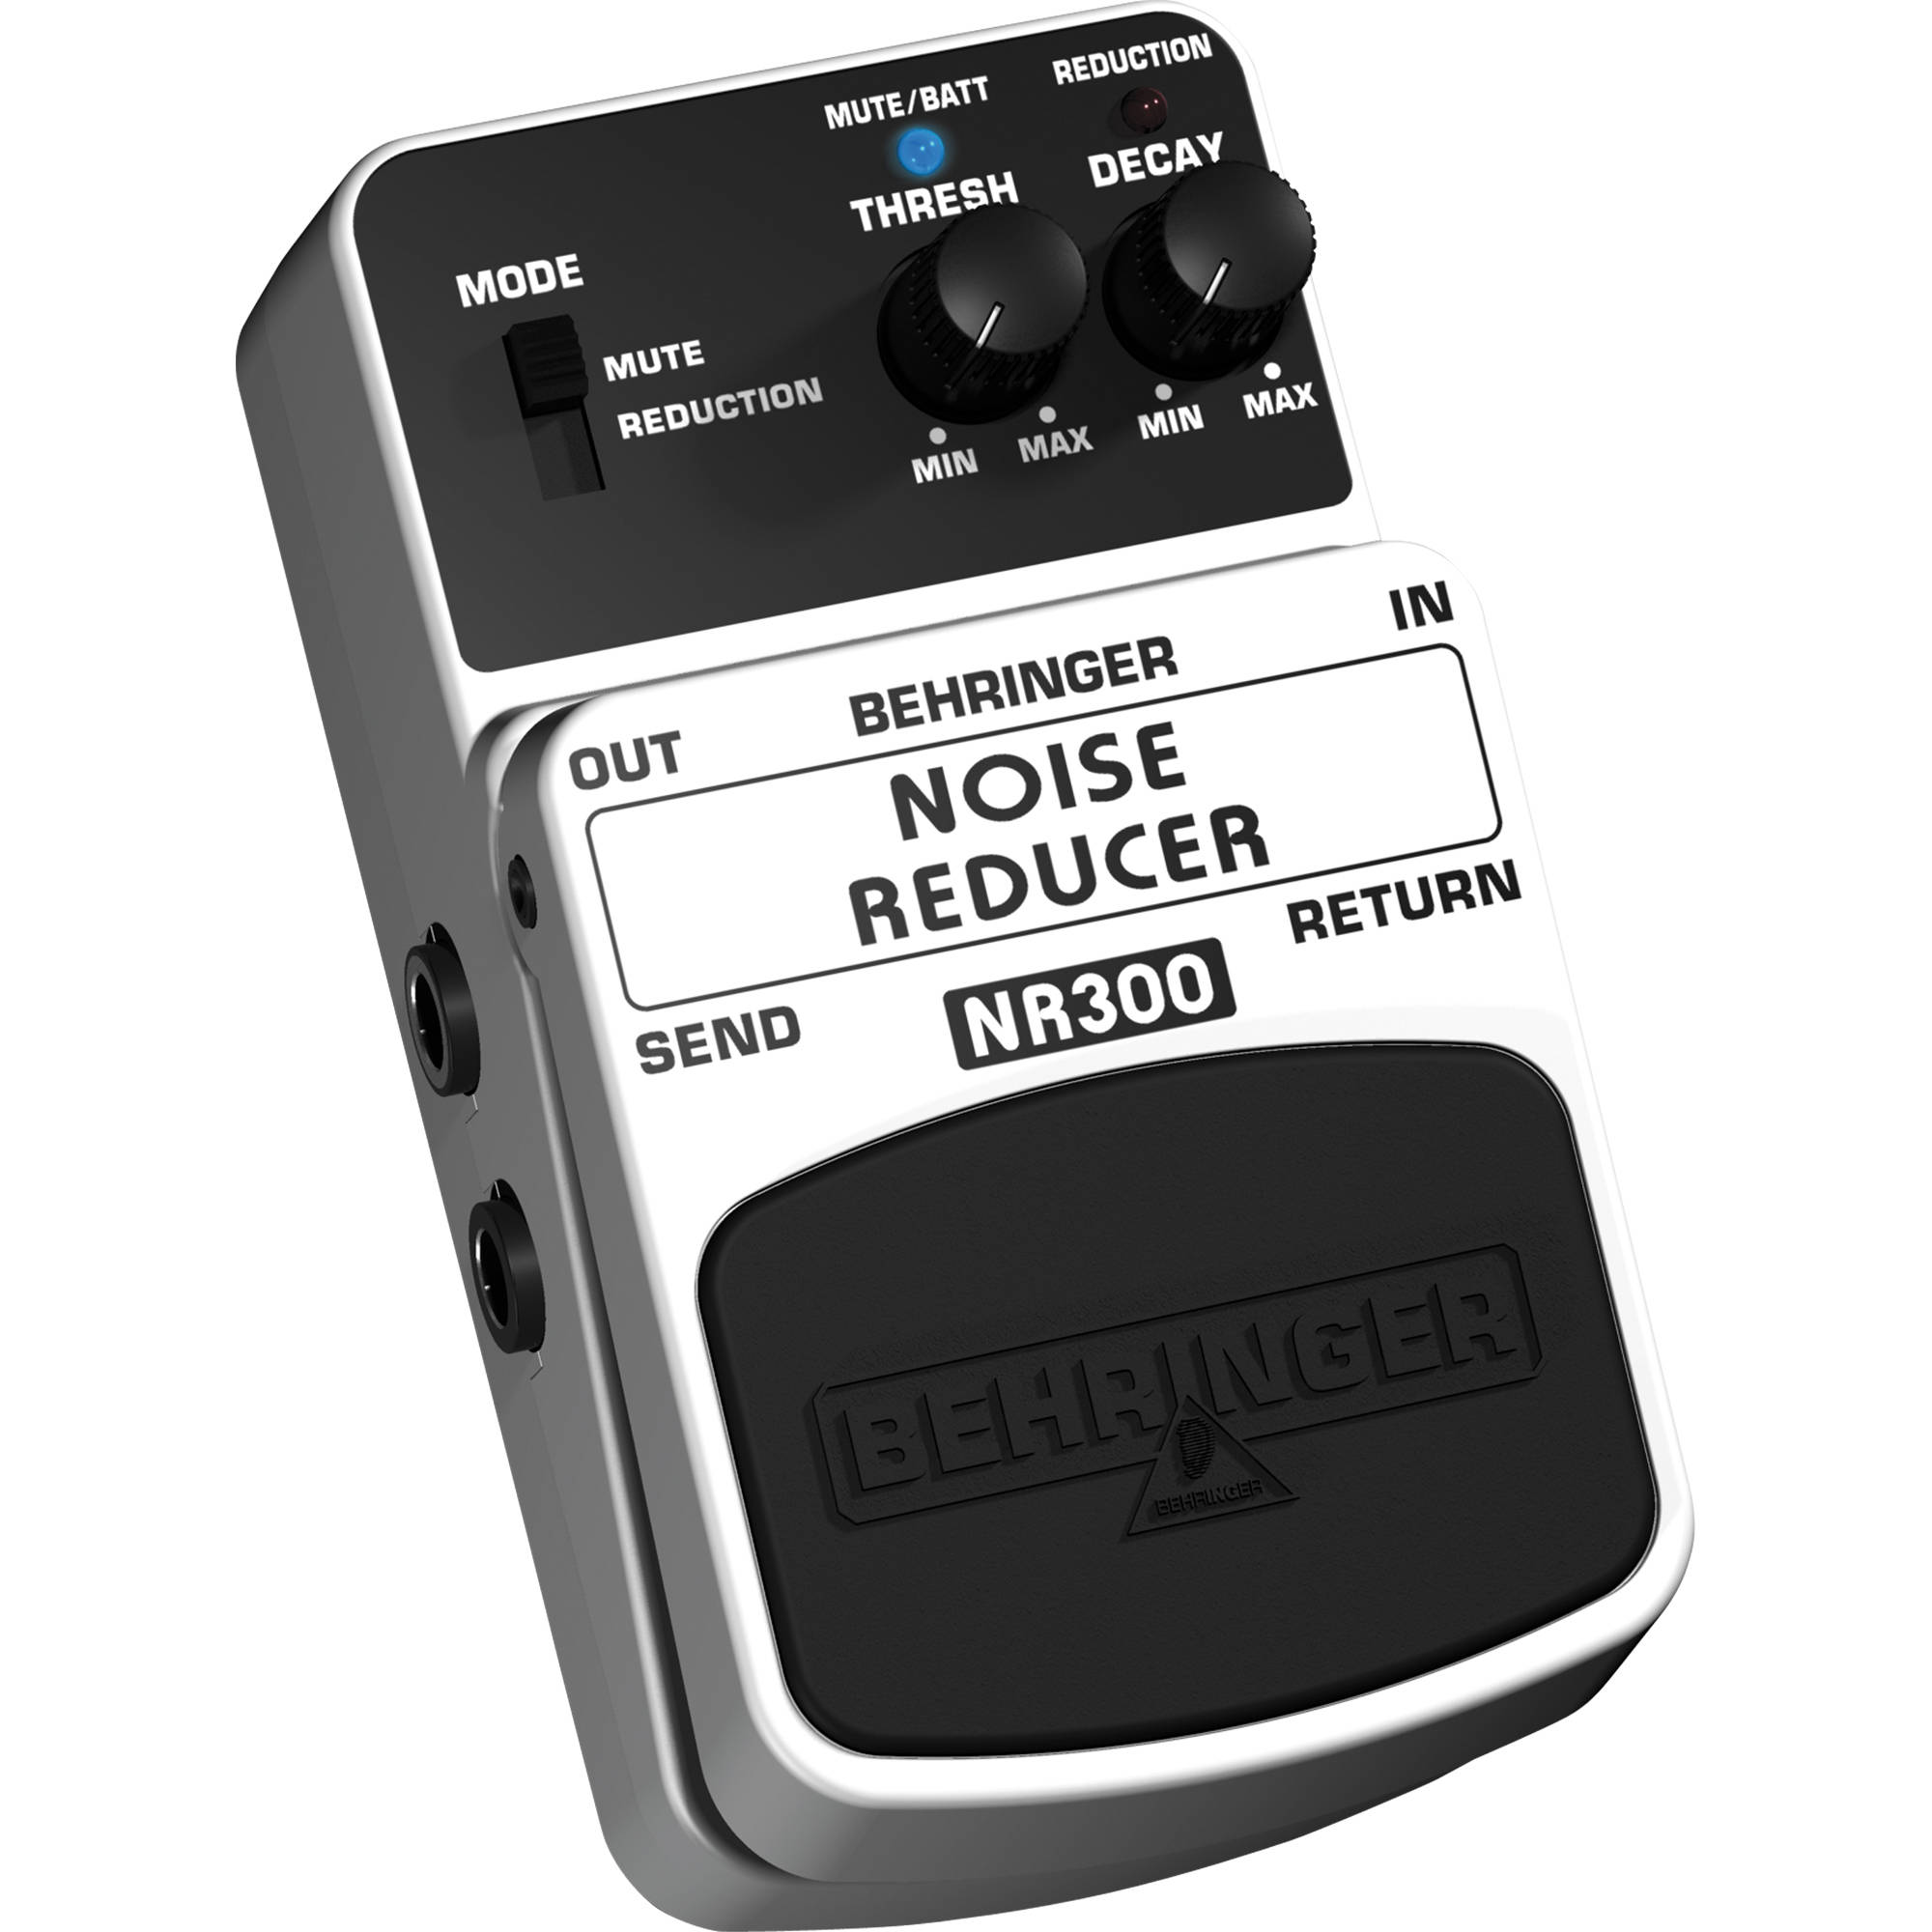 how to open behringer pedal battery